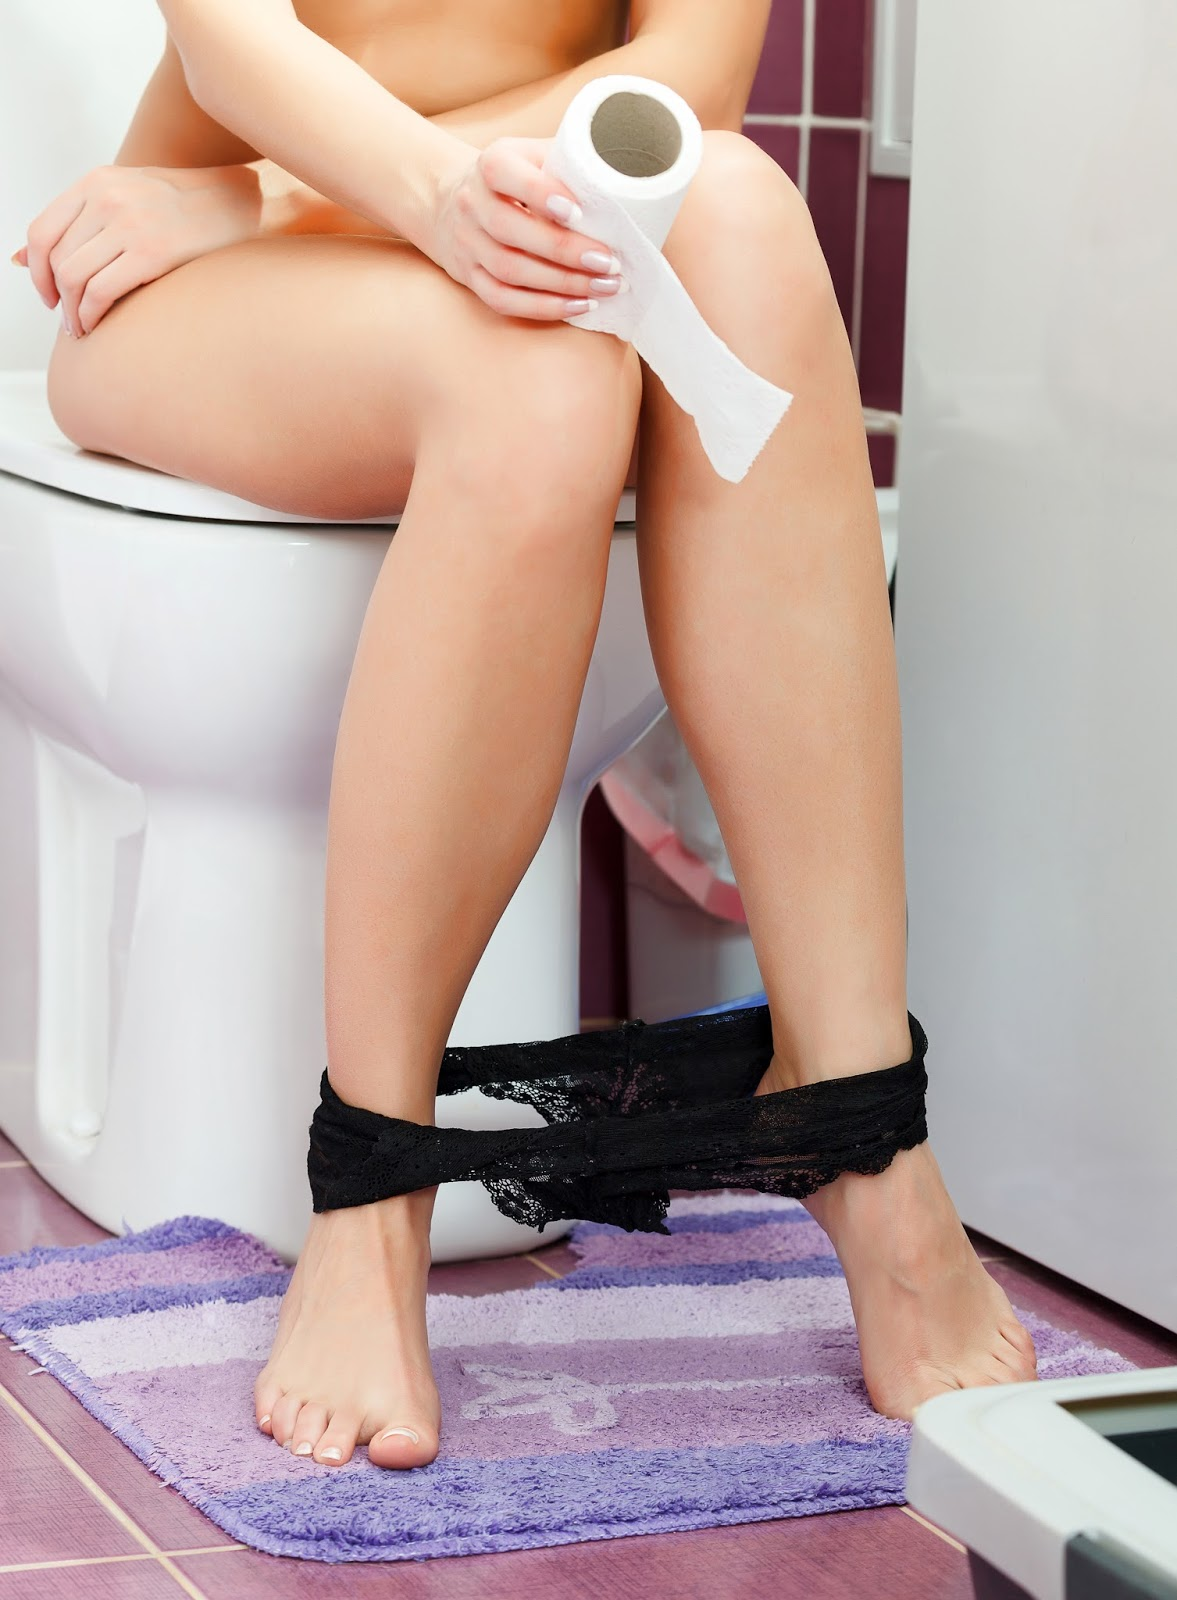 Sometimes, if you feel very constipated, it may actually help to reduce your fibre intake.